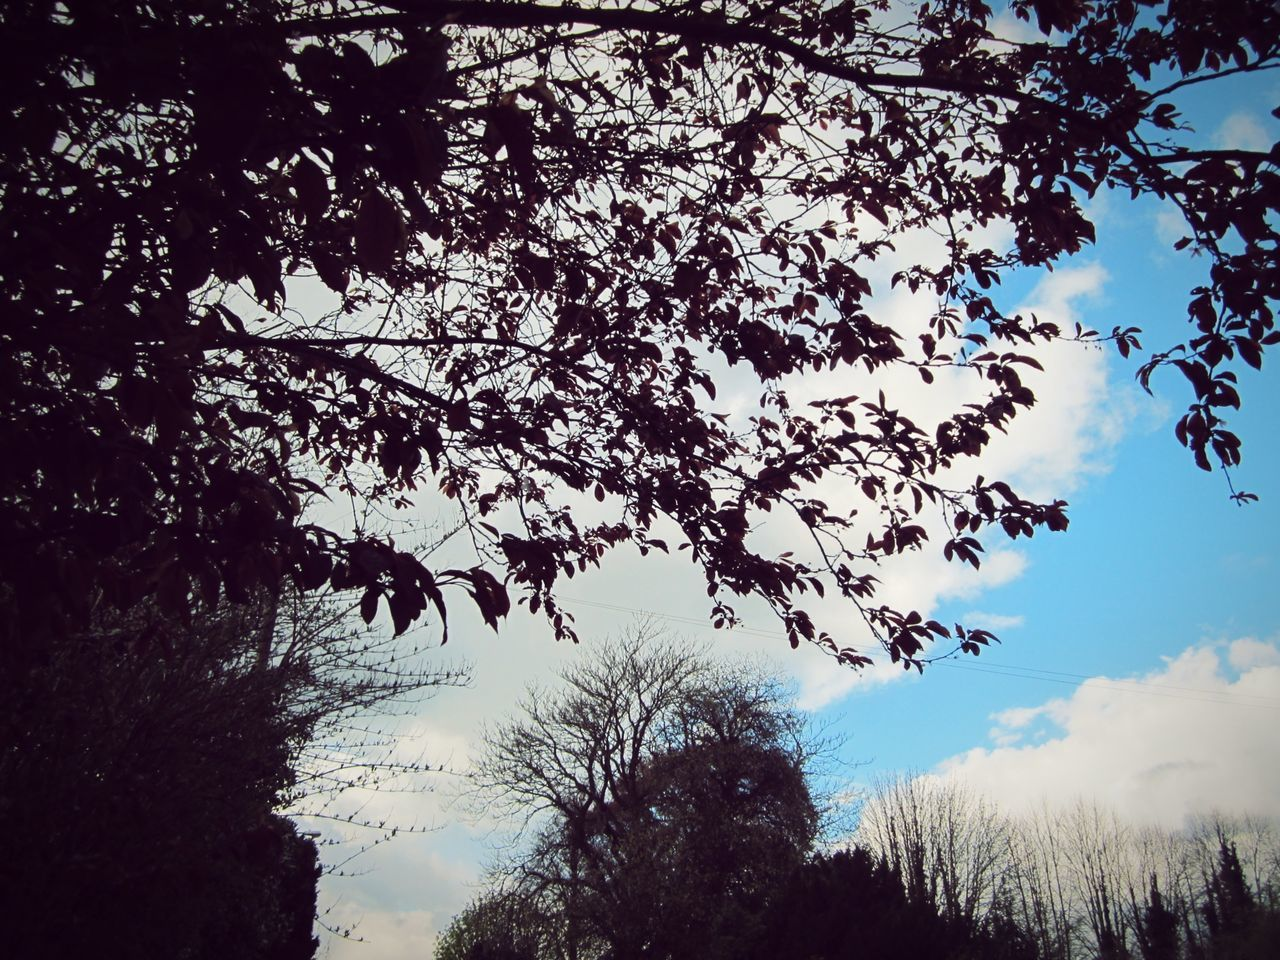 ◽ in the frame again◽ April 2016 Nature_collection Landscape_collection EyeEmNatureLover Frame It Tree_collection  Trees And Sky Eyeem Nature The Moment Catching The Moment Sky_collection Urban Landscape